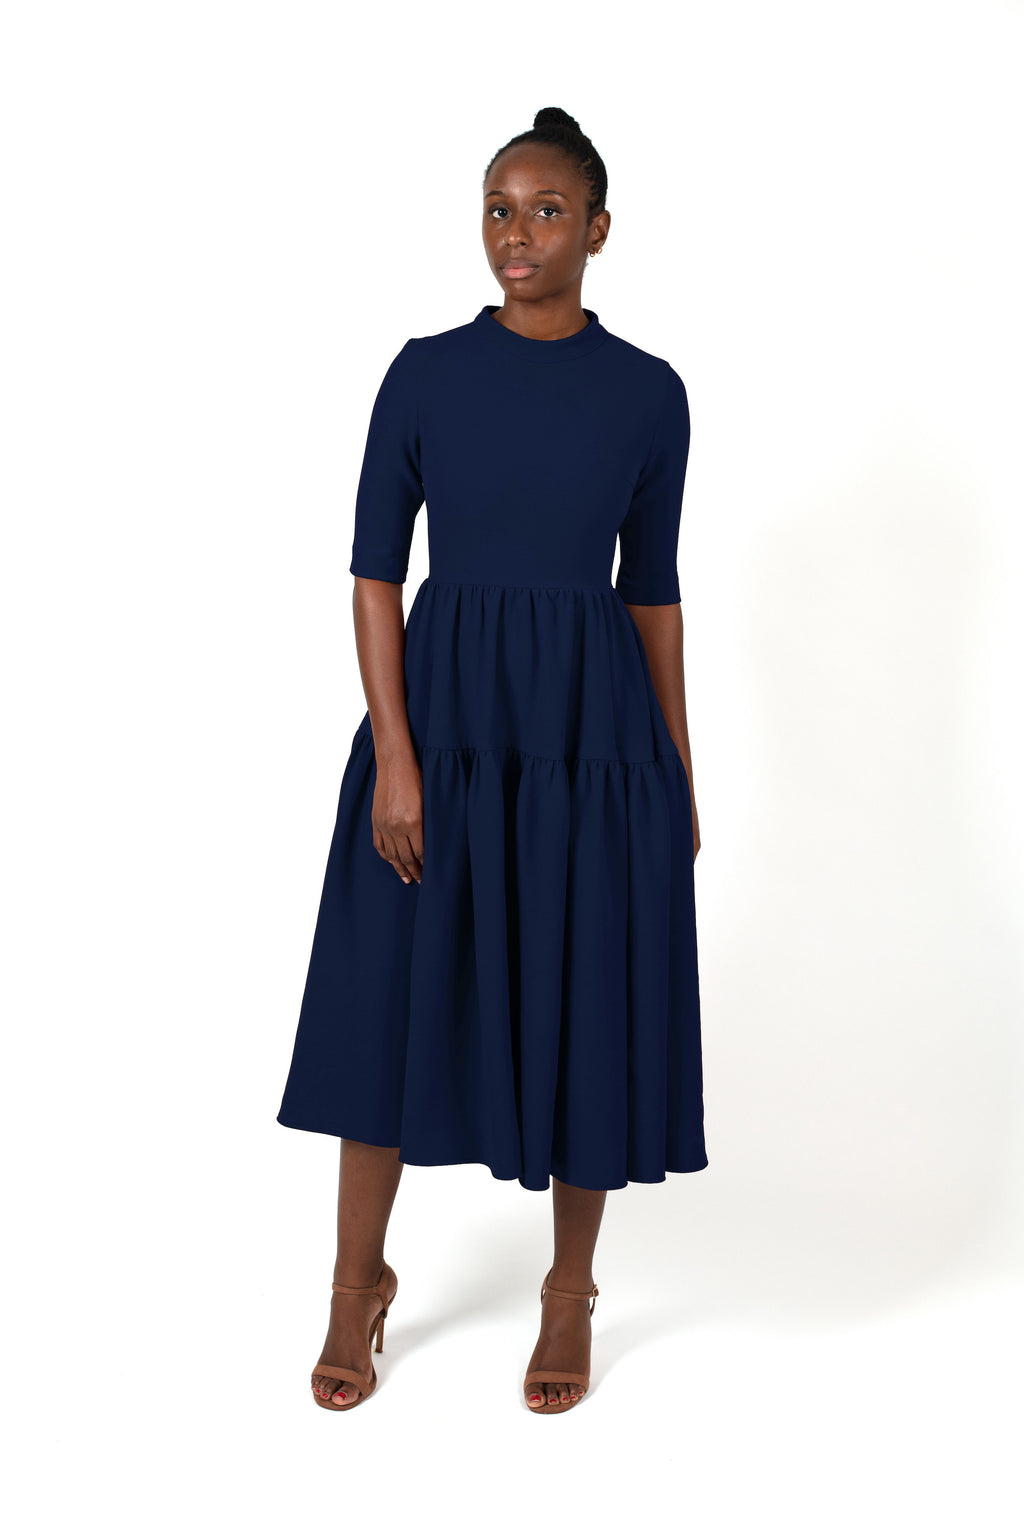 Chichi Dress in Navy Blue